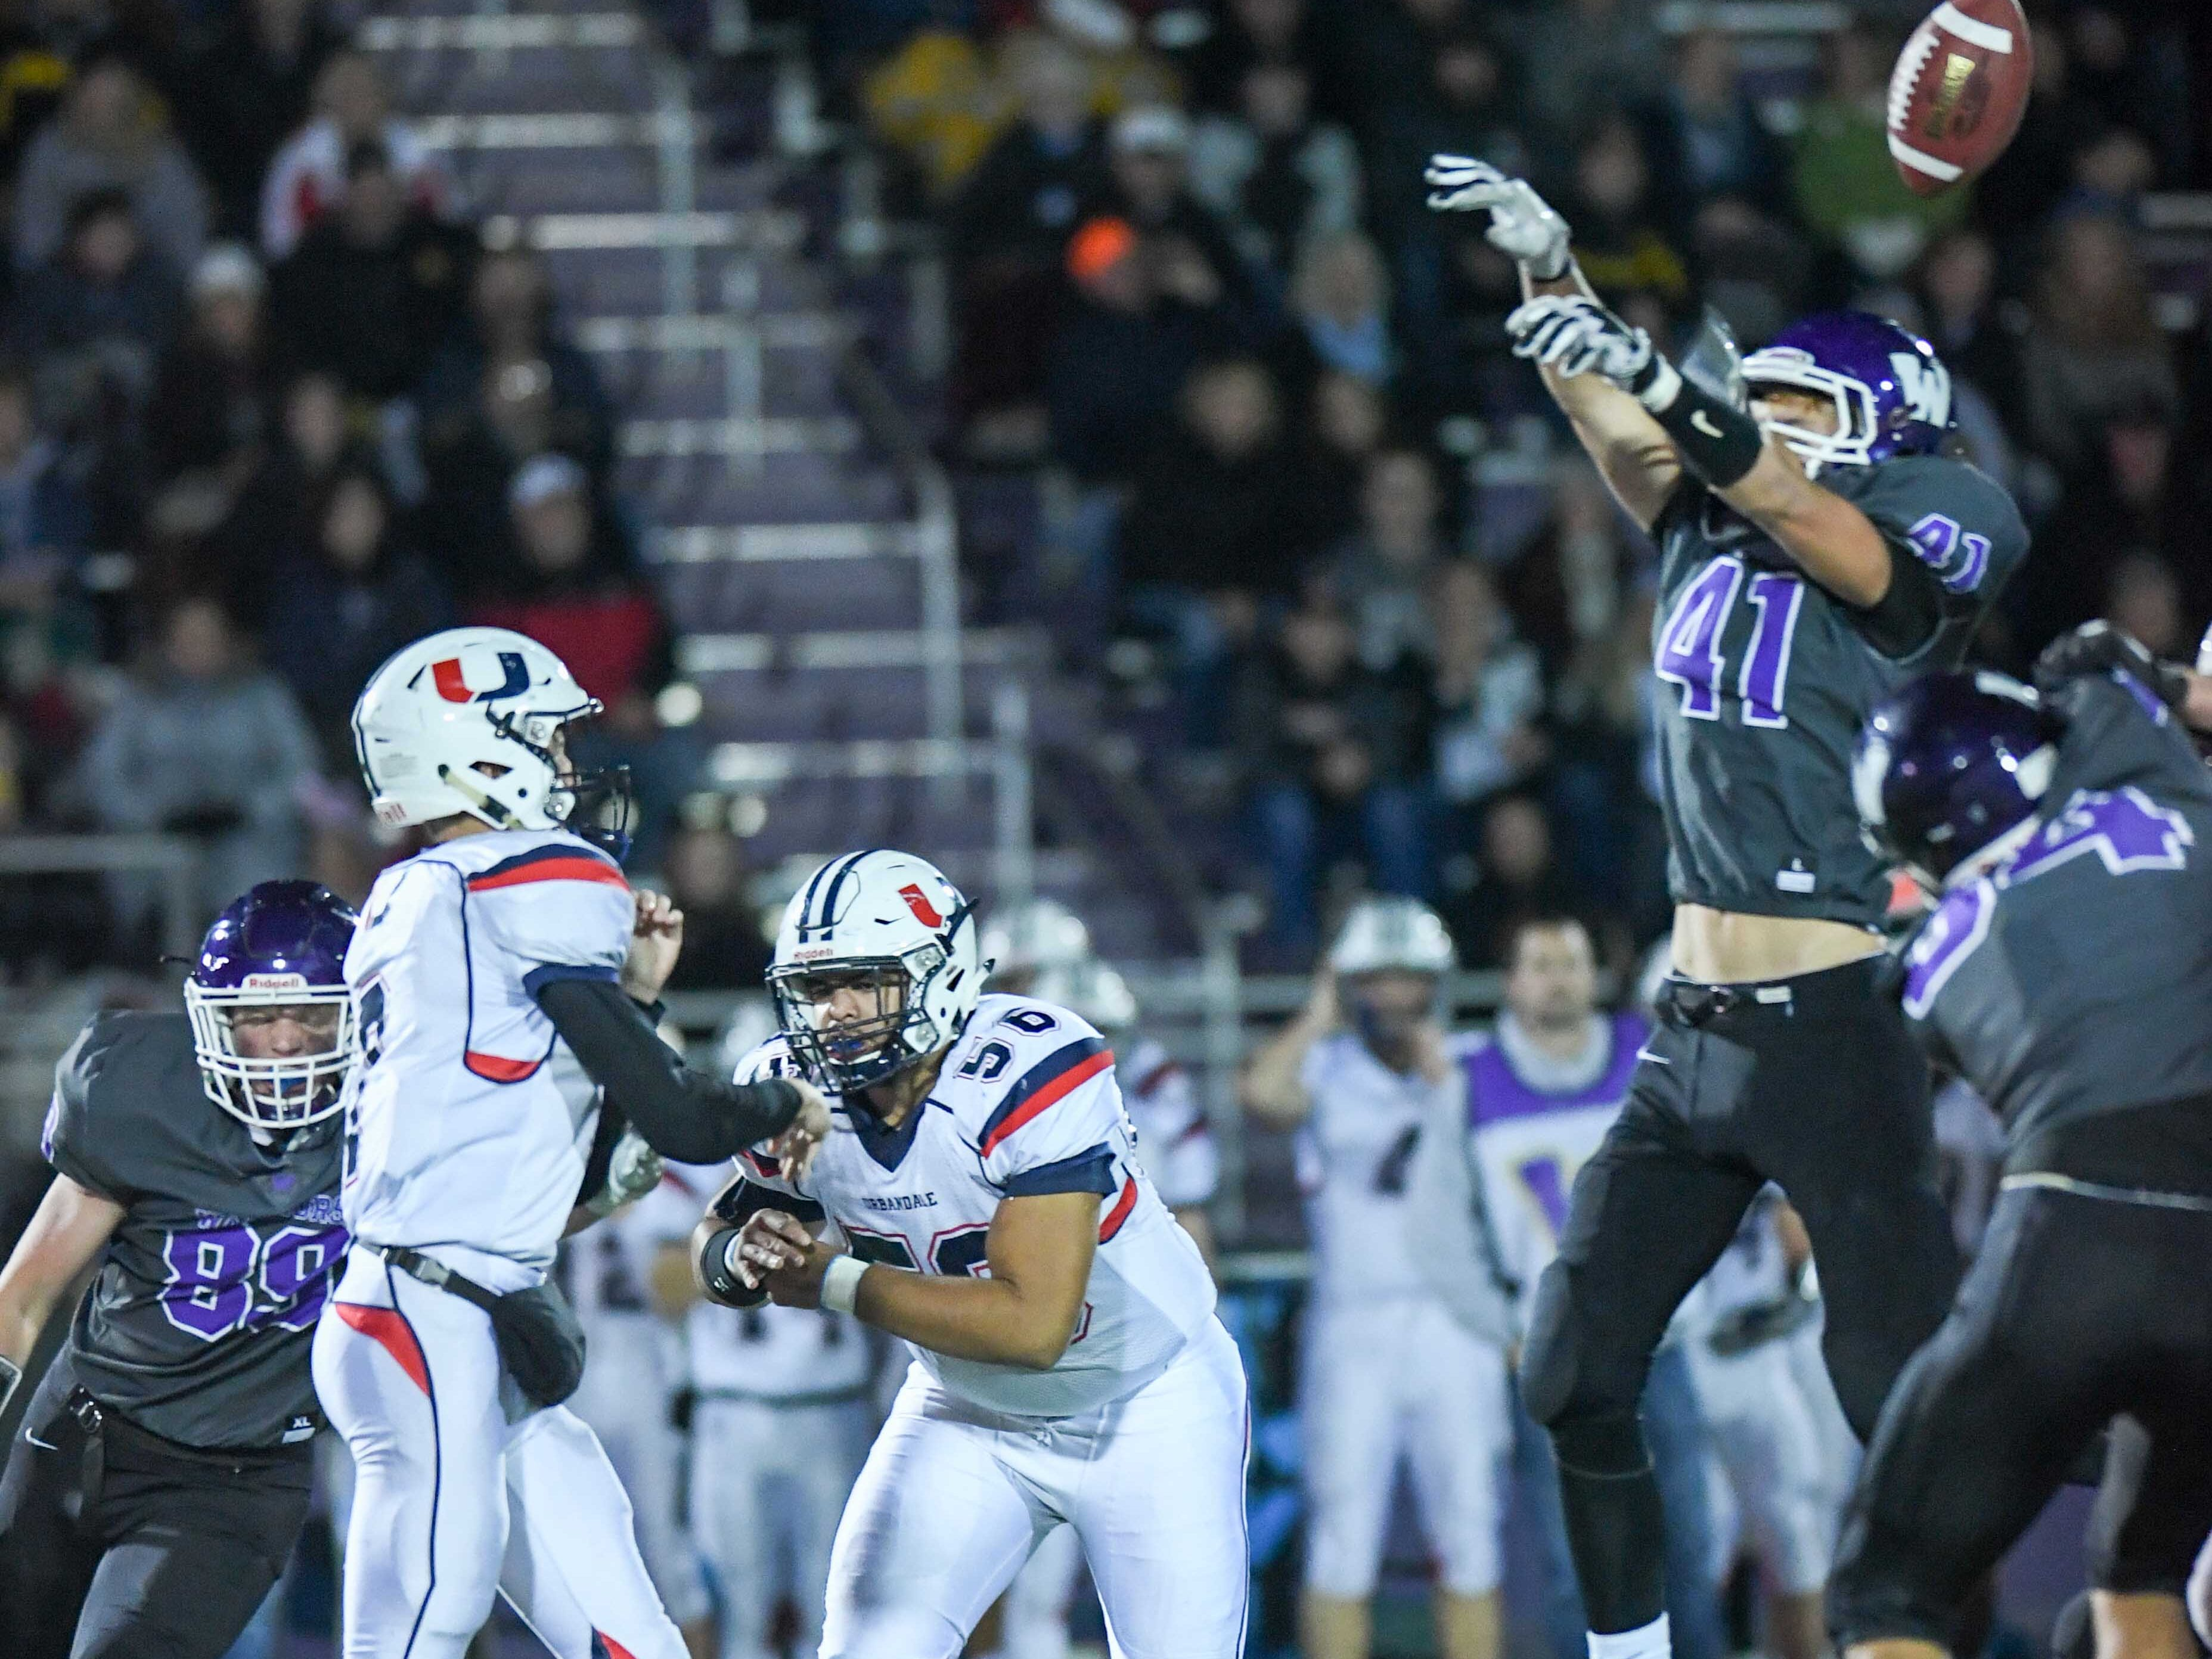 Urbandale Quarterback Ty Langenberg (7) gets his pass knocked down by Waukee's Cole Spyksma (41) on Friday, Oct. 26, 2018 during a playoff game between the Waukee Warriors and the Urbandale J-Hawks at Waukee High School.